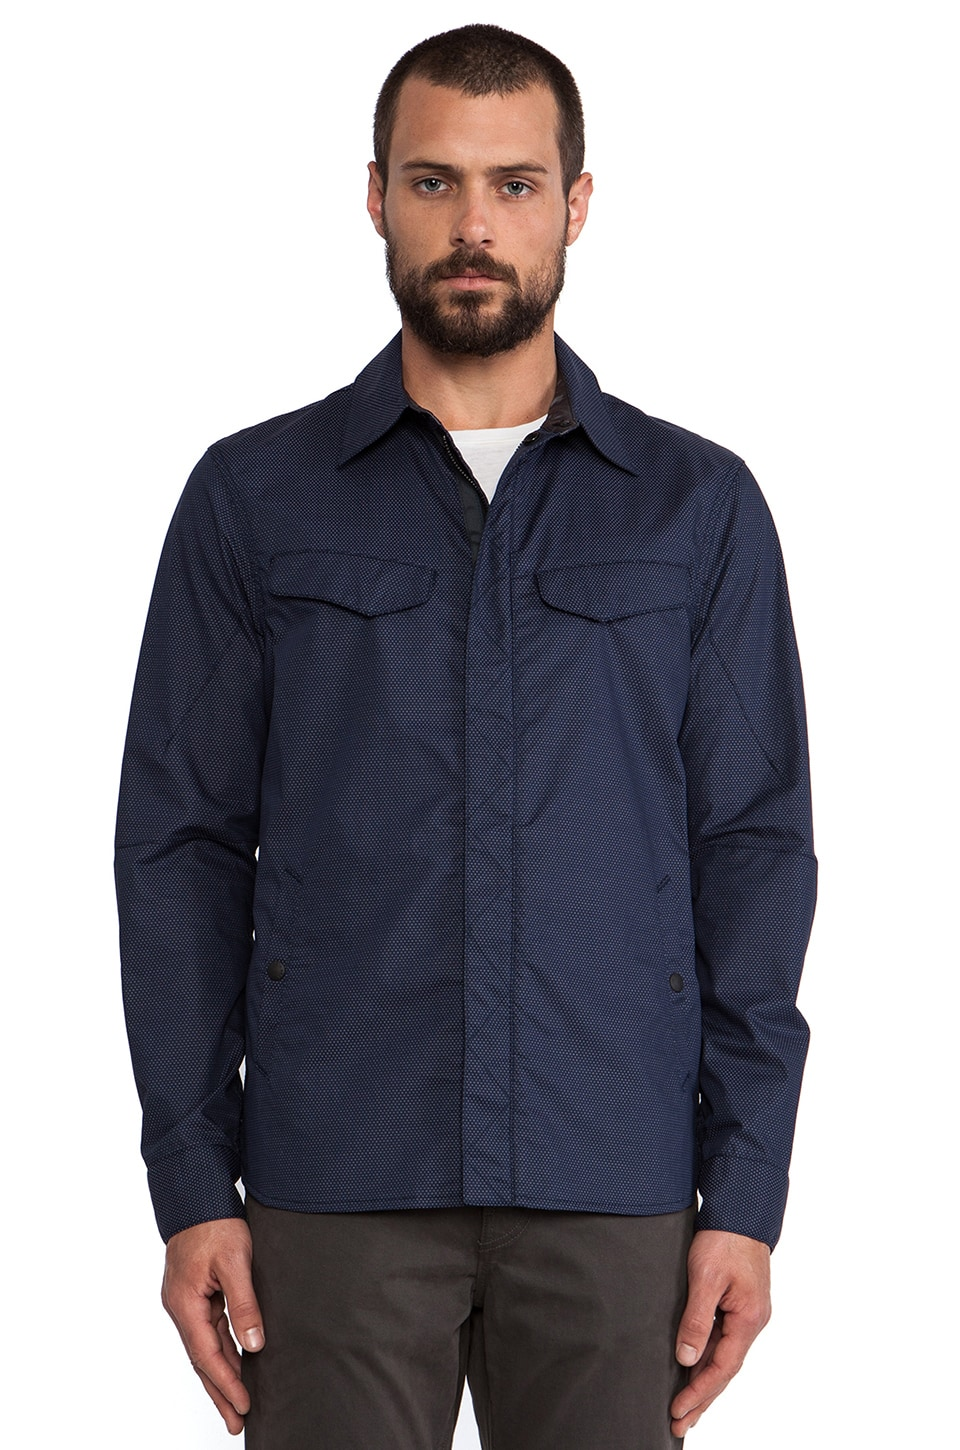 Rag & Bone Borkett Jacket in Navy